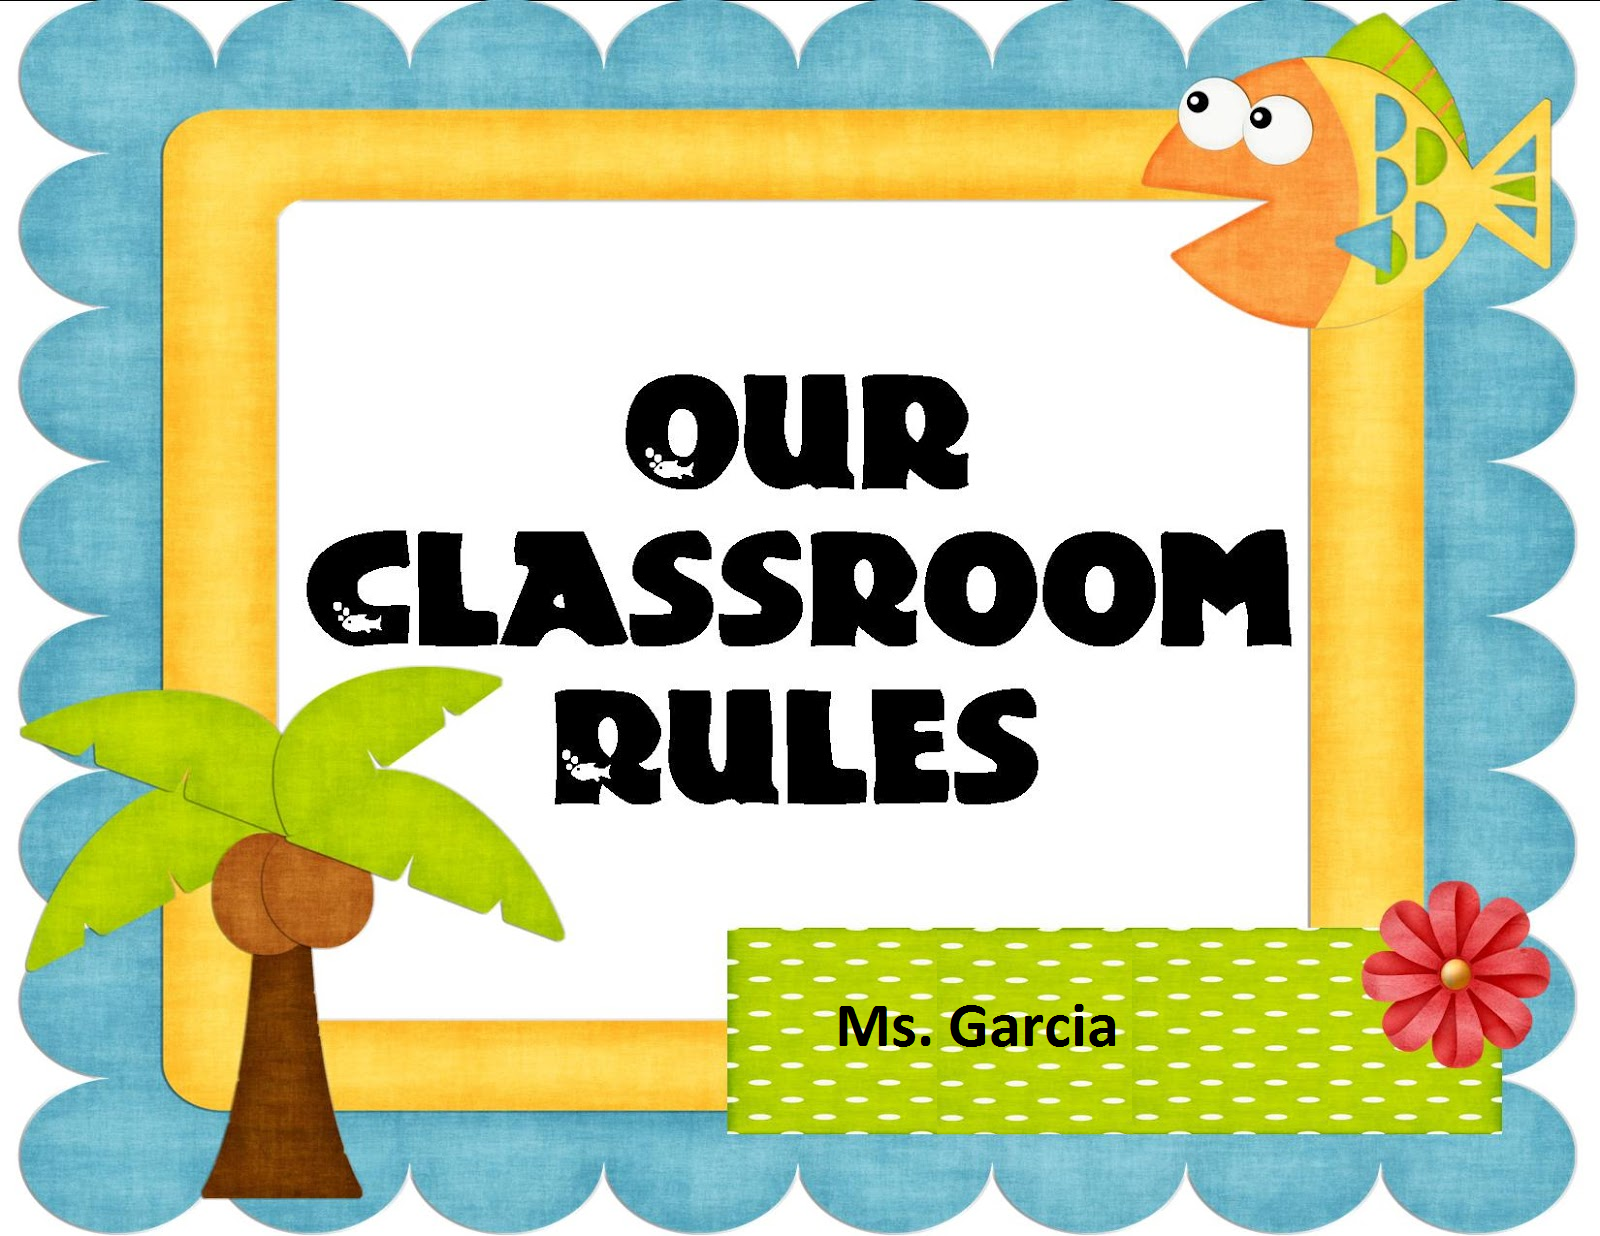 classroom rules pictures clipart panda free clipart images rh clipartpanda com classroom rules clipart black and white classroom rules clipart black and white